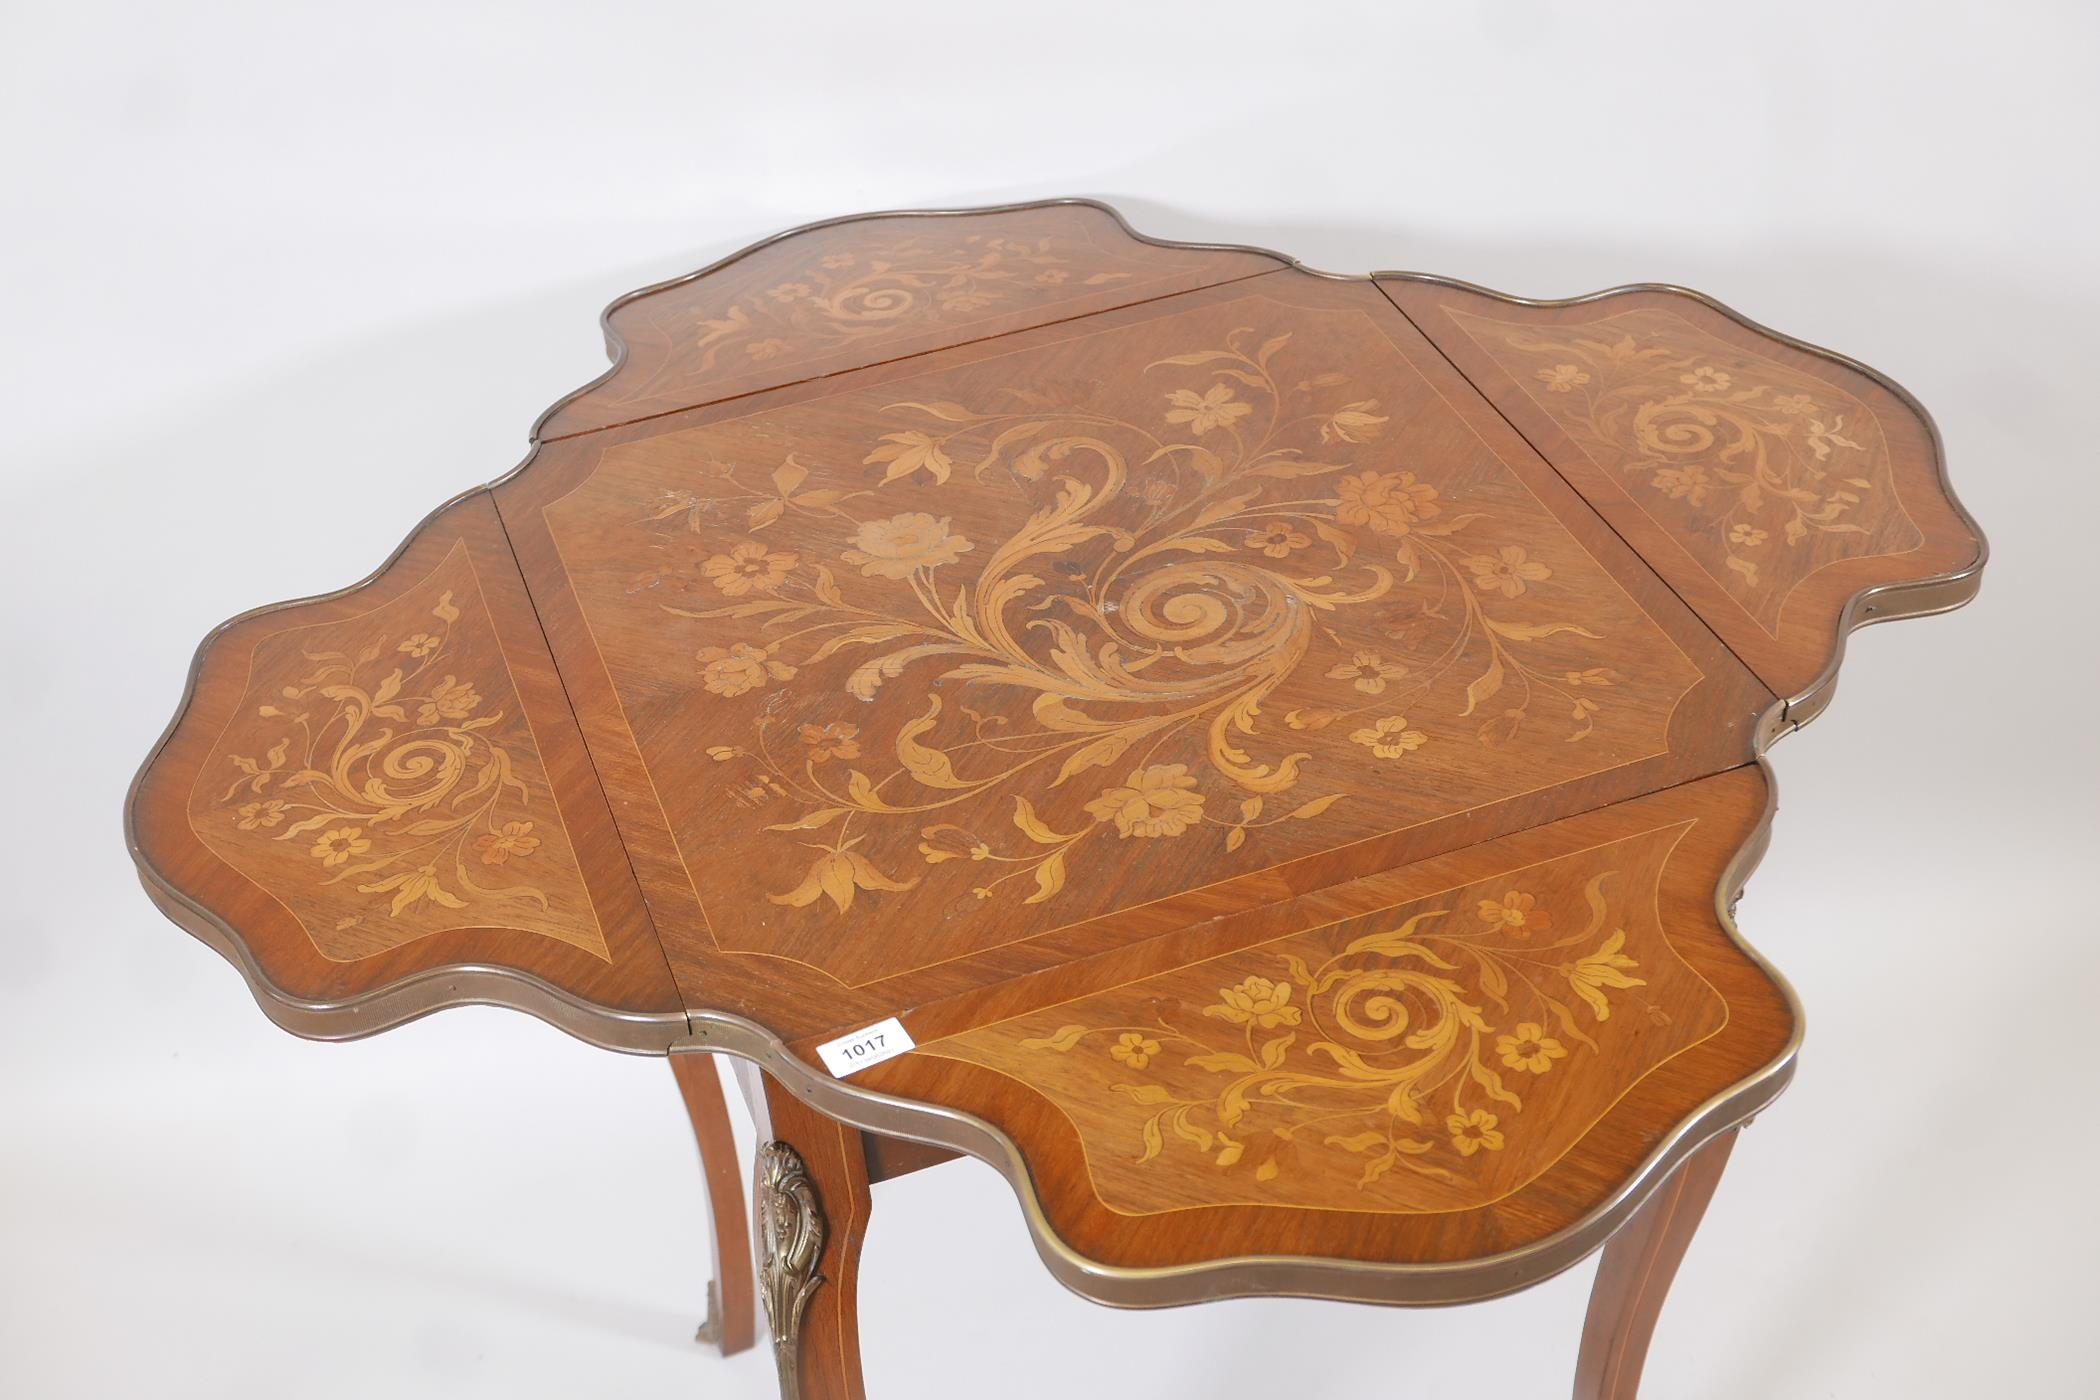 A French C19th marquetry inlaid rosewood centre table, with shaped drop leaves and gilt brass - Image 4 of 5